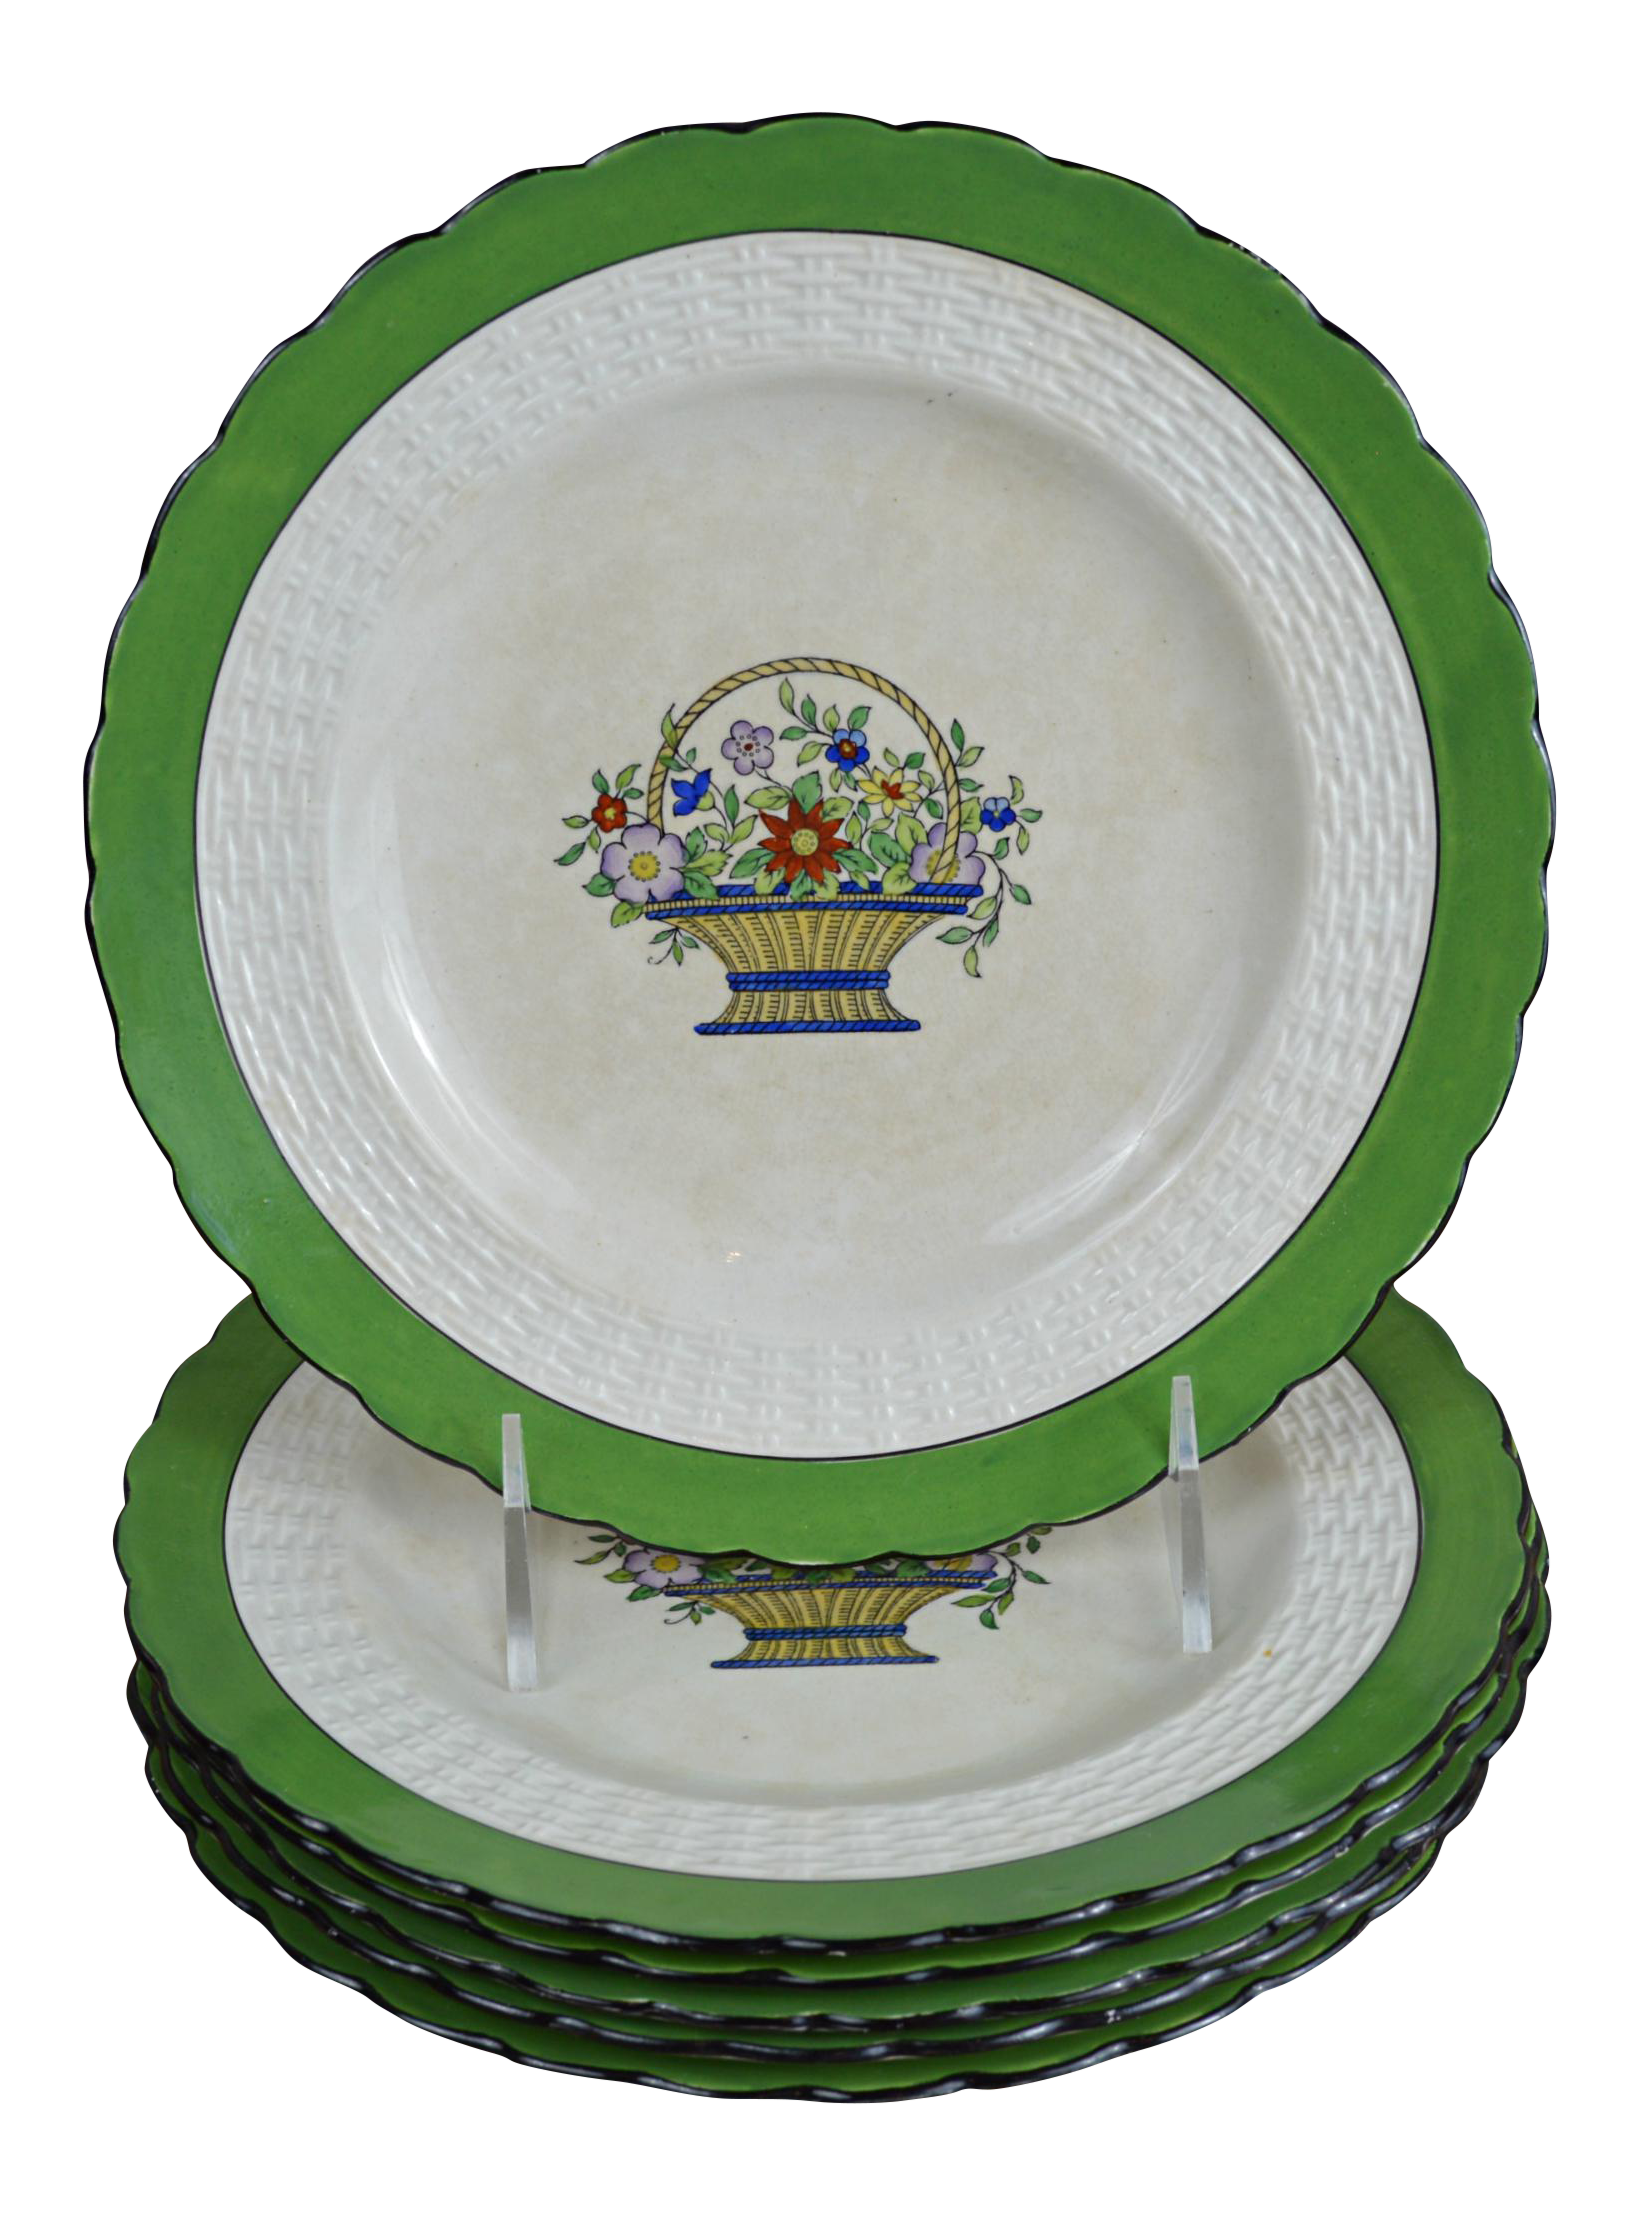 Early 20th Century English Minton Dessert Plates - Set of 6  sc 1 st  Chairish : green plate set - pezcame.com